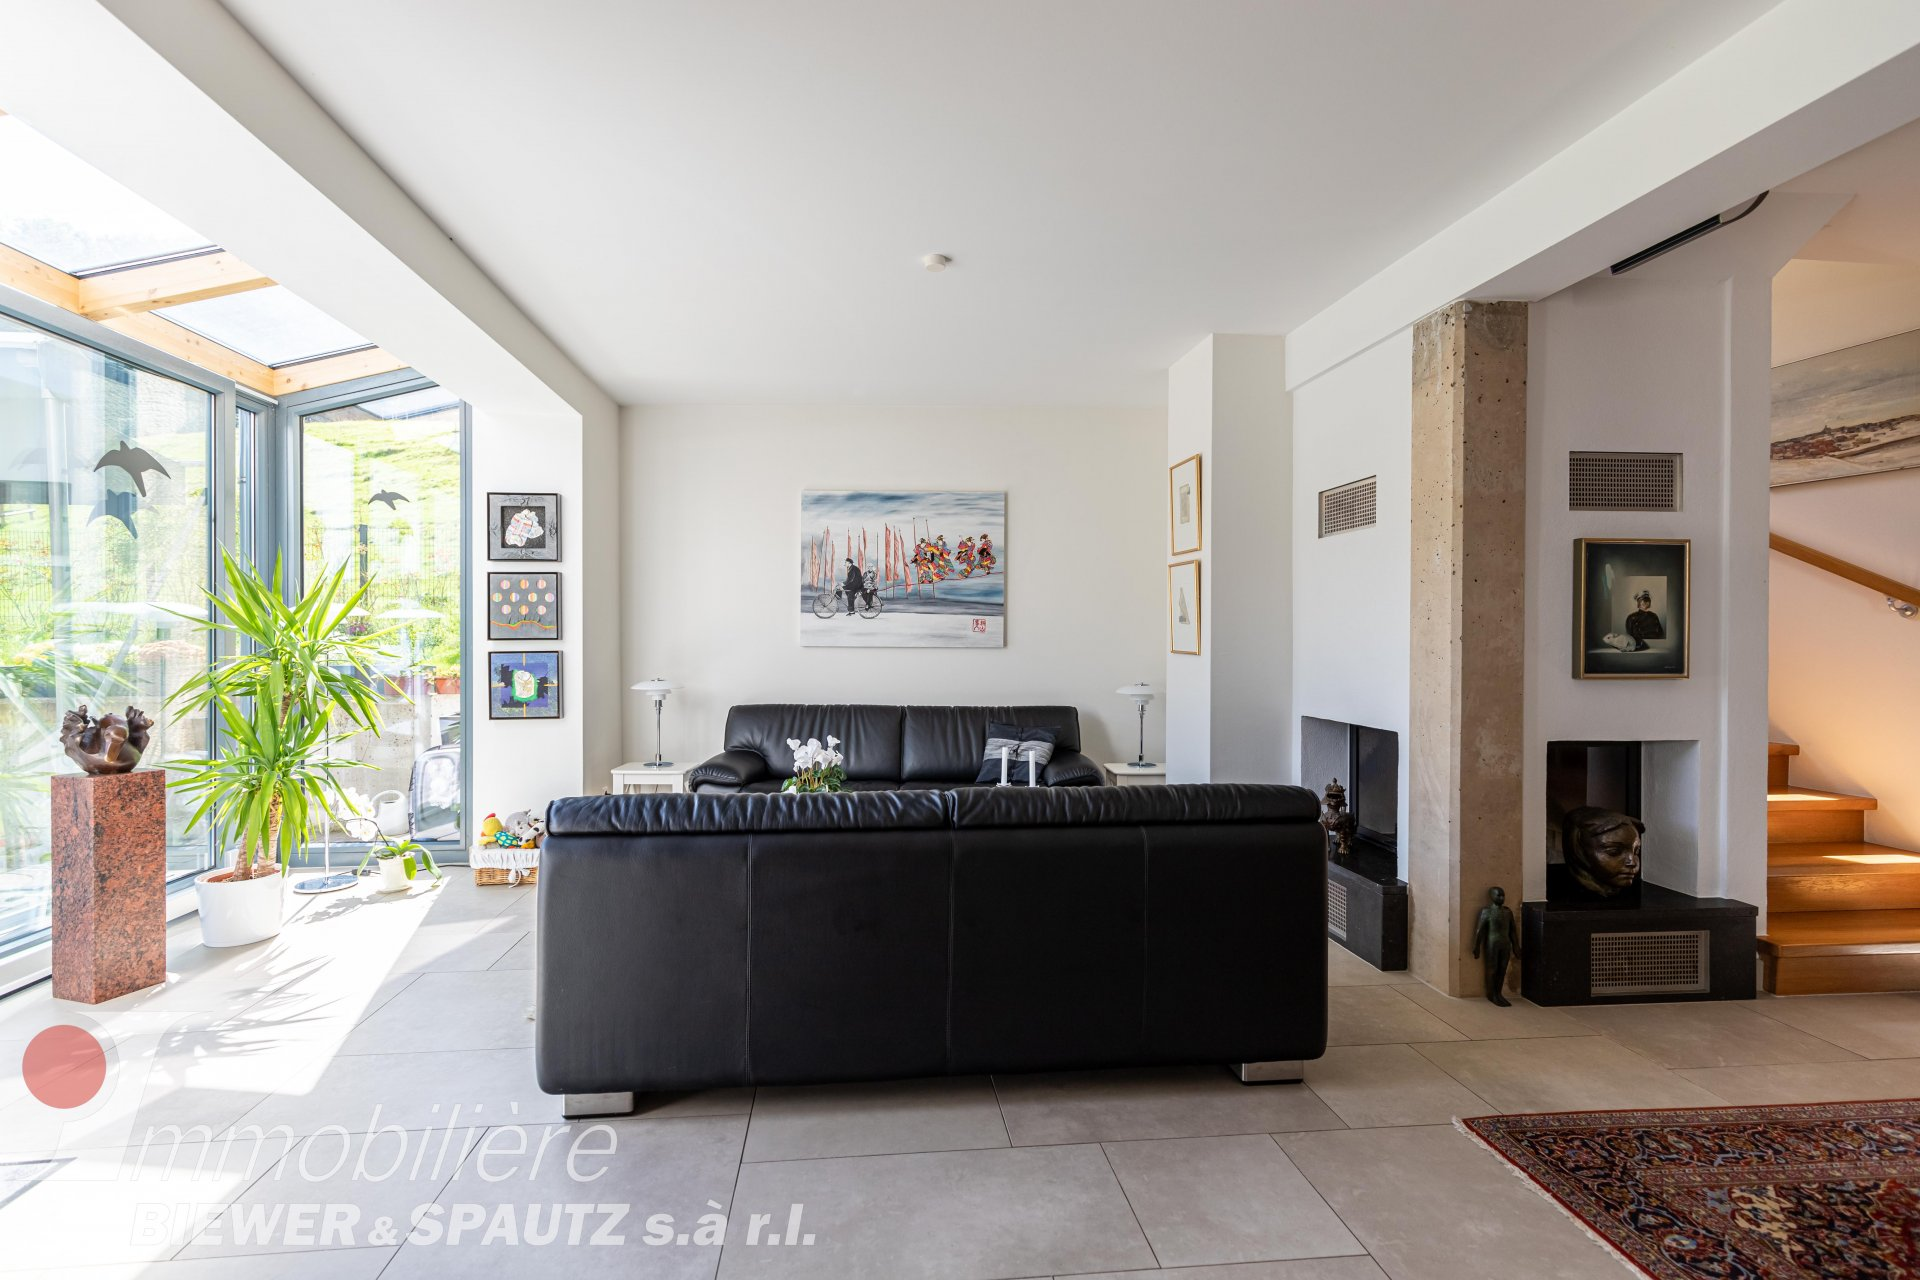 FOR RENT - House with 4 bedrooms in Mertert